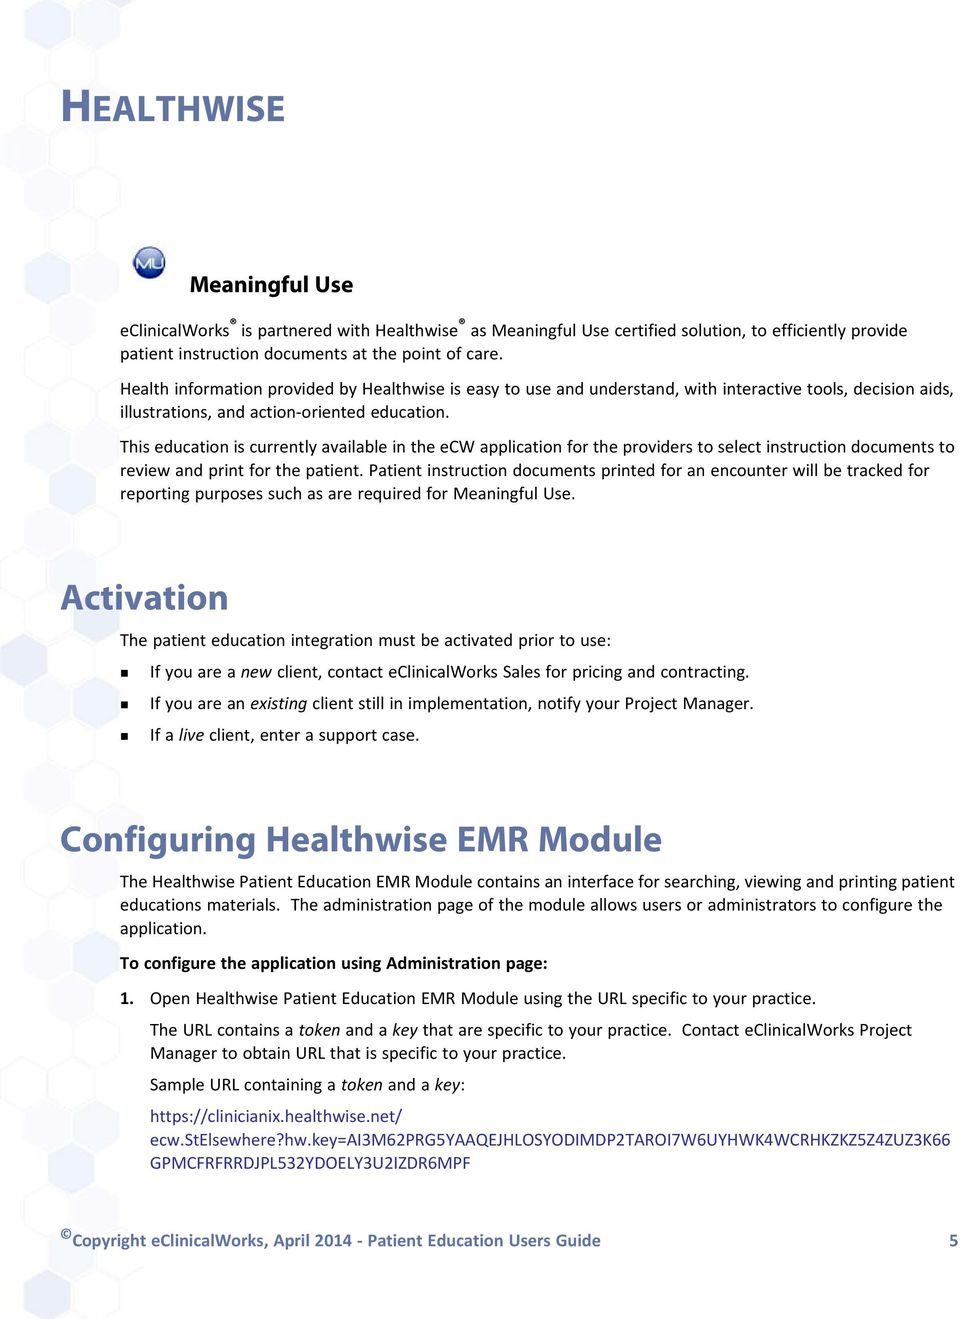 Patient Education Users Guide Pdf